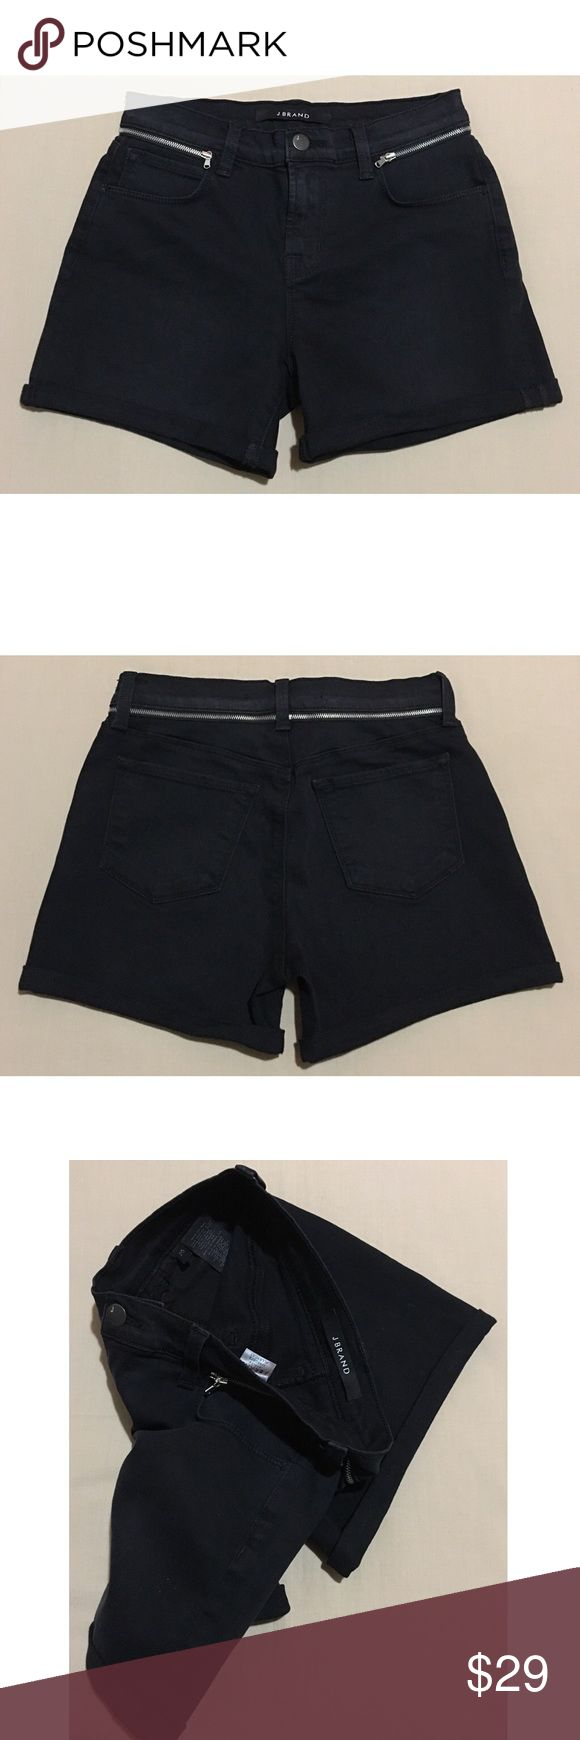 J BRAND Alley Cat Black Shorts $189 J BRAND Alley Cat Black Shorts             (Those Are The Really Expensive Ones In The  J Brand Store!).             Limited Edition         This Is A Sample   • 100% - Authentic  • Fabric - 92% Cotton 6% Elastomultiester  2% Elastane.  • Color - Black   • Retail - $189  • Size - 25       We Ship Same Day Or Next!        Check Out My Other Items For Exclusives Deals On Clothing Up To 60% Off Retail Price!        Contact Me If You Have Any…